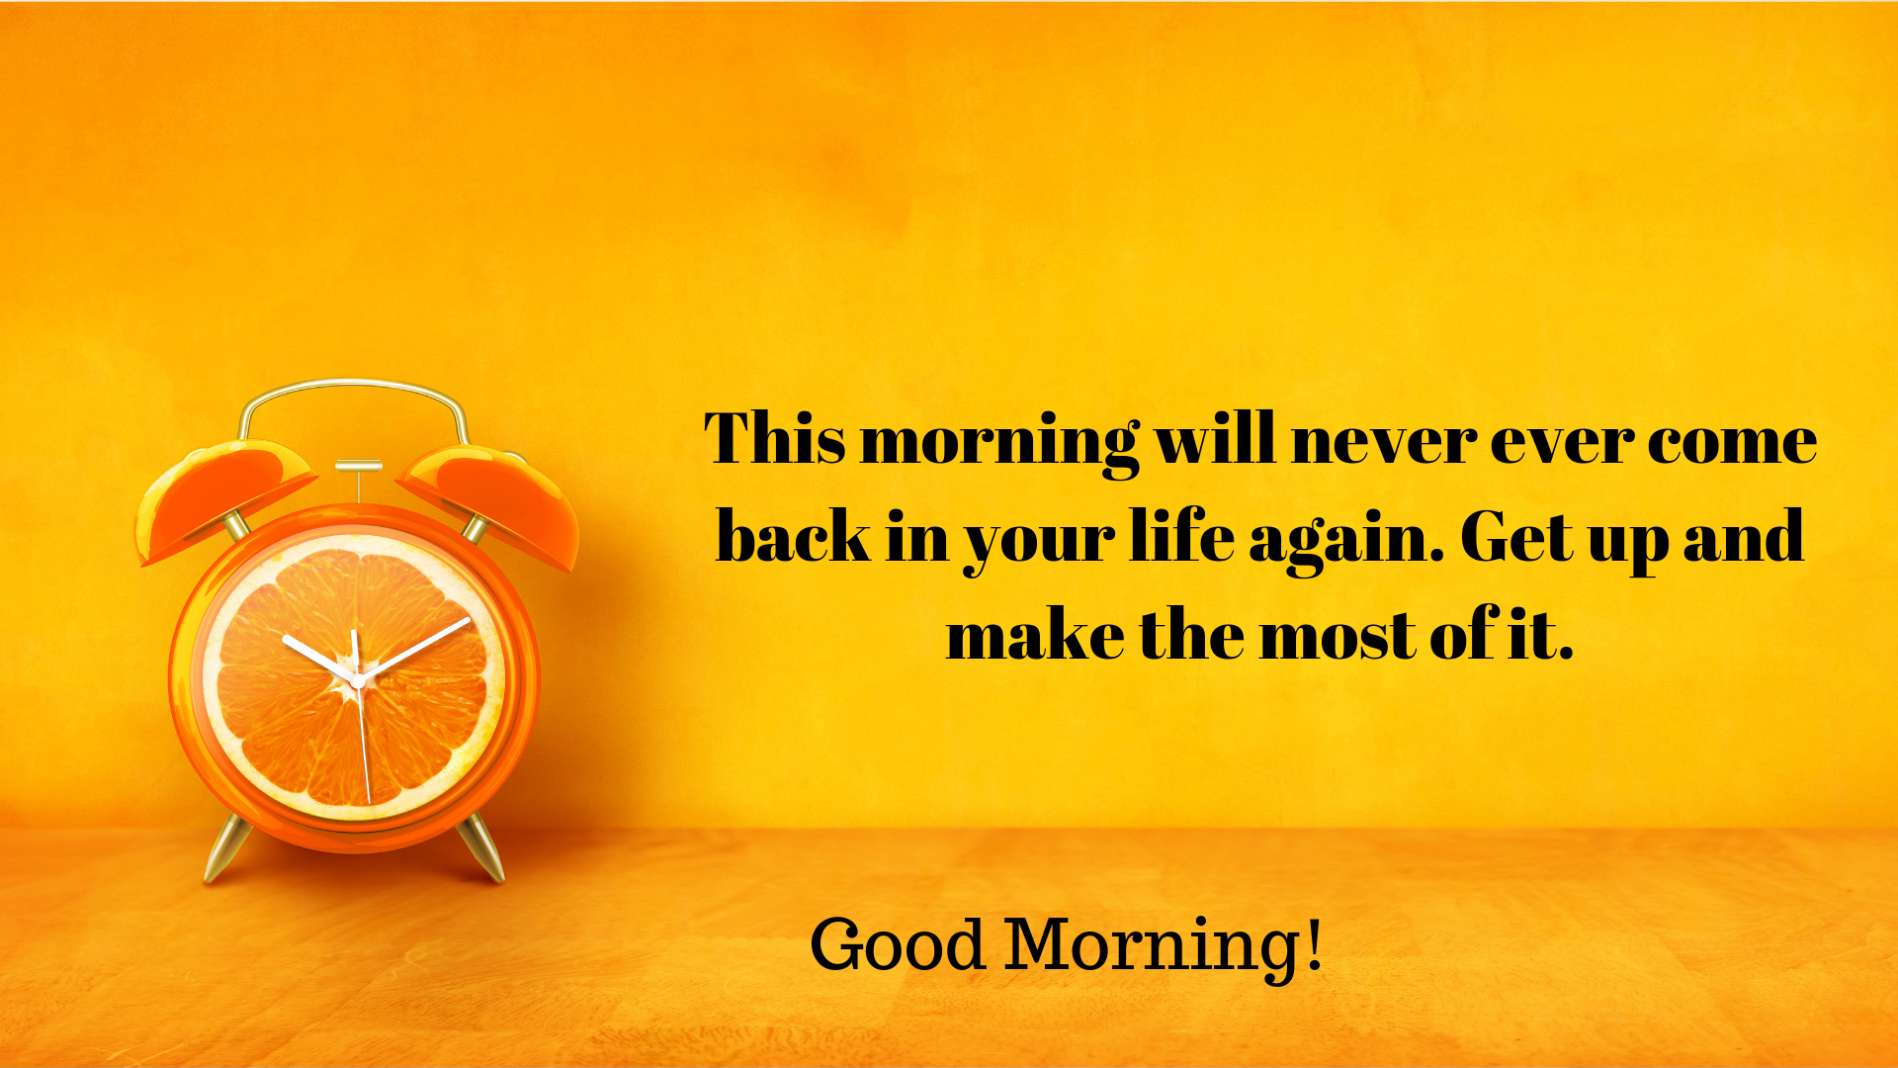 Good Morning! Wishes, Messages, Images To Send Your Friends